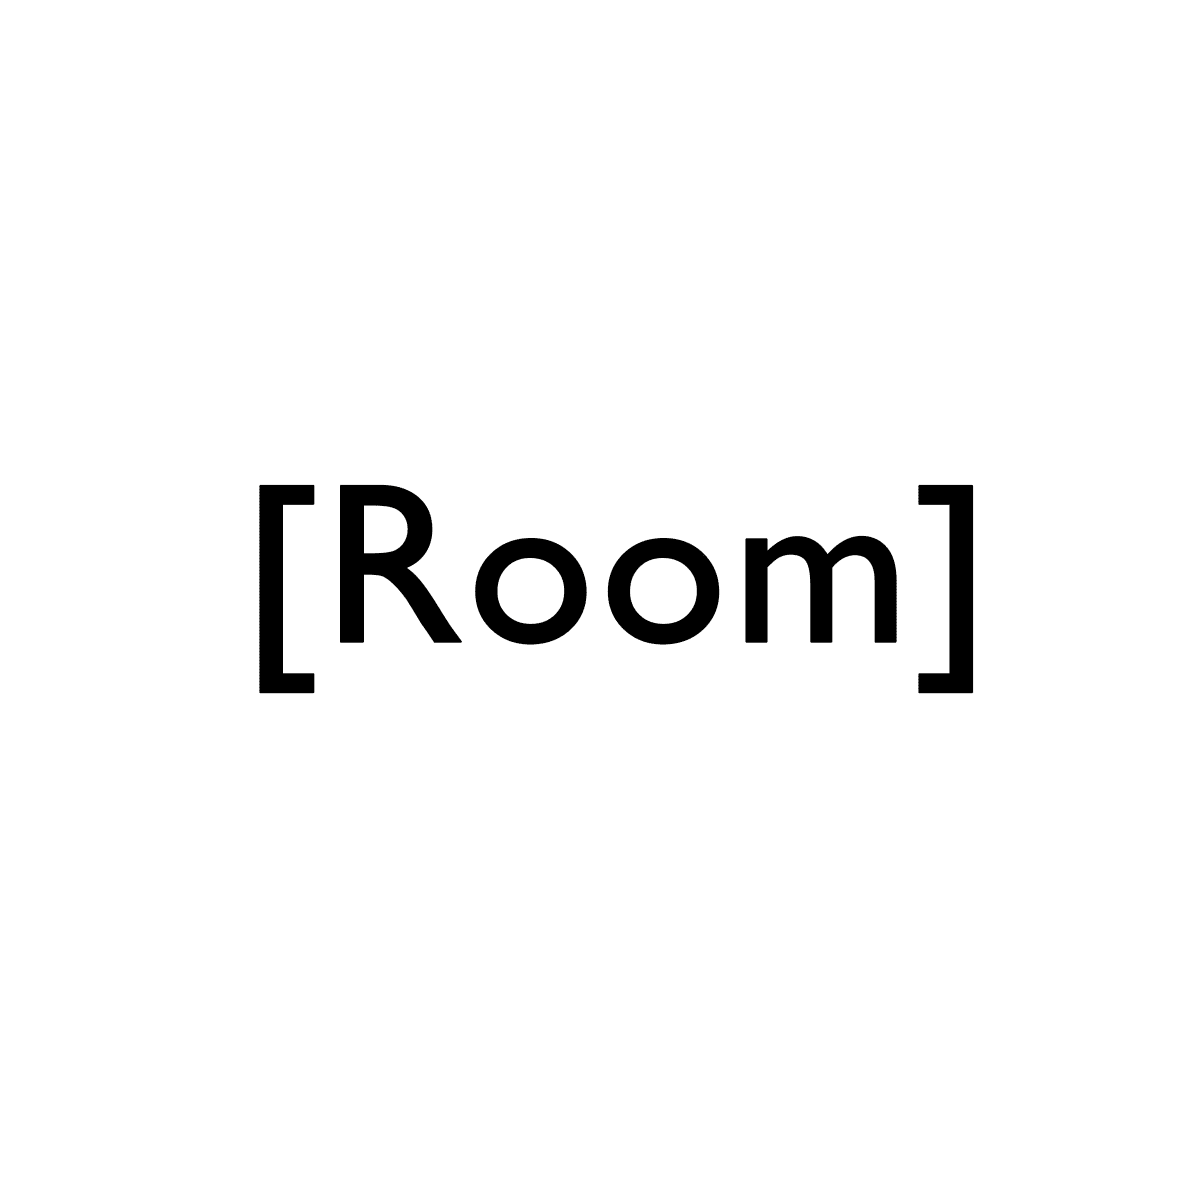 Introducing [Room] by Make Room